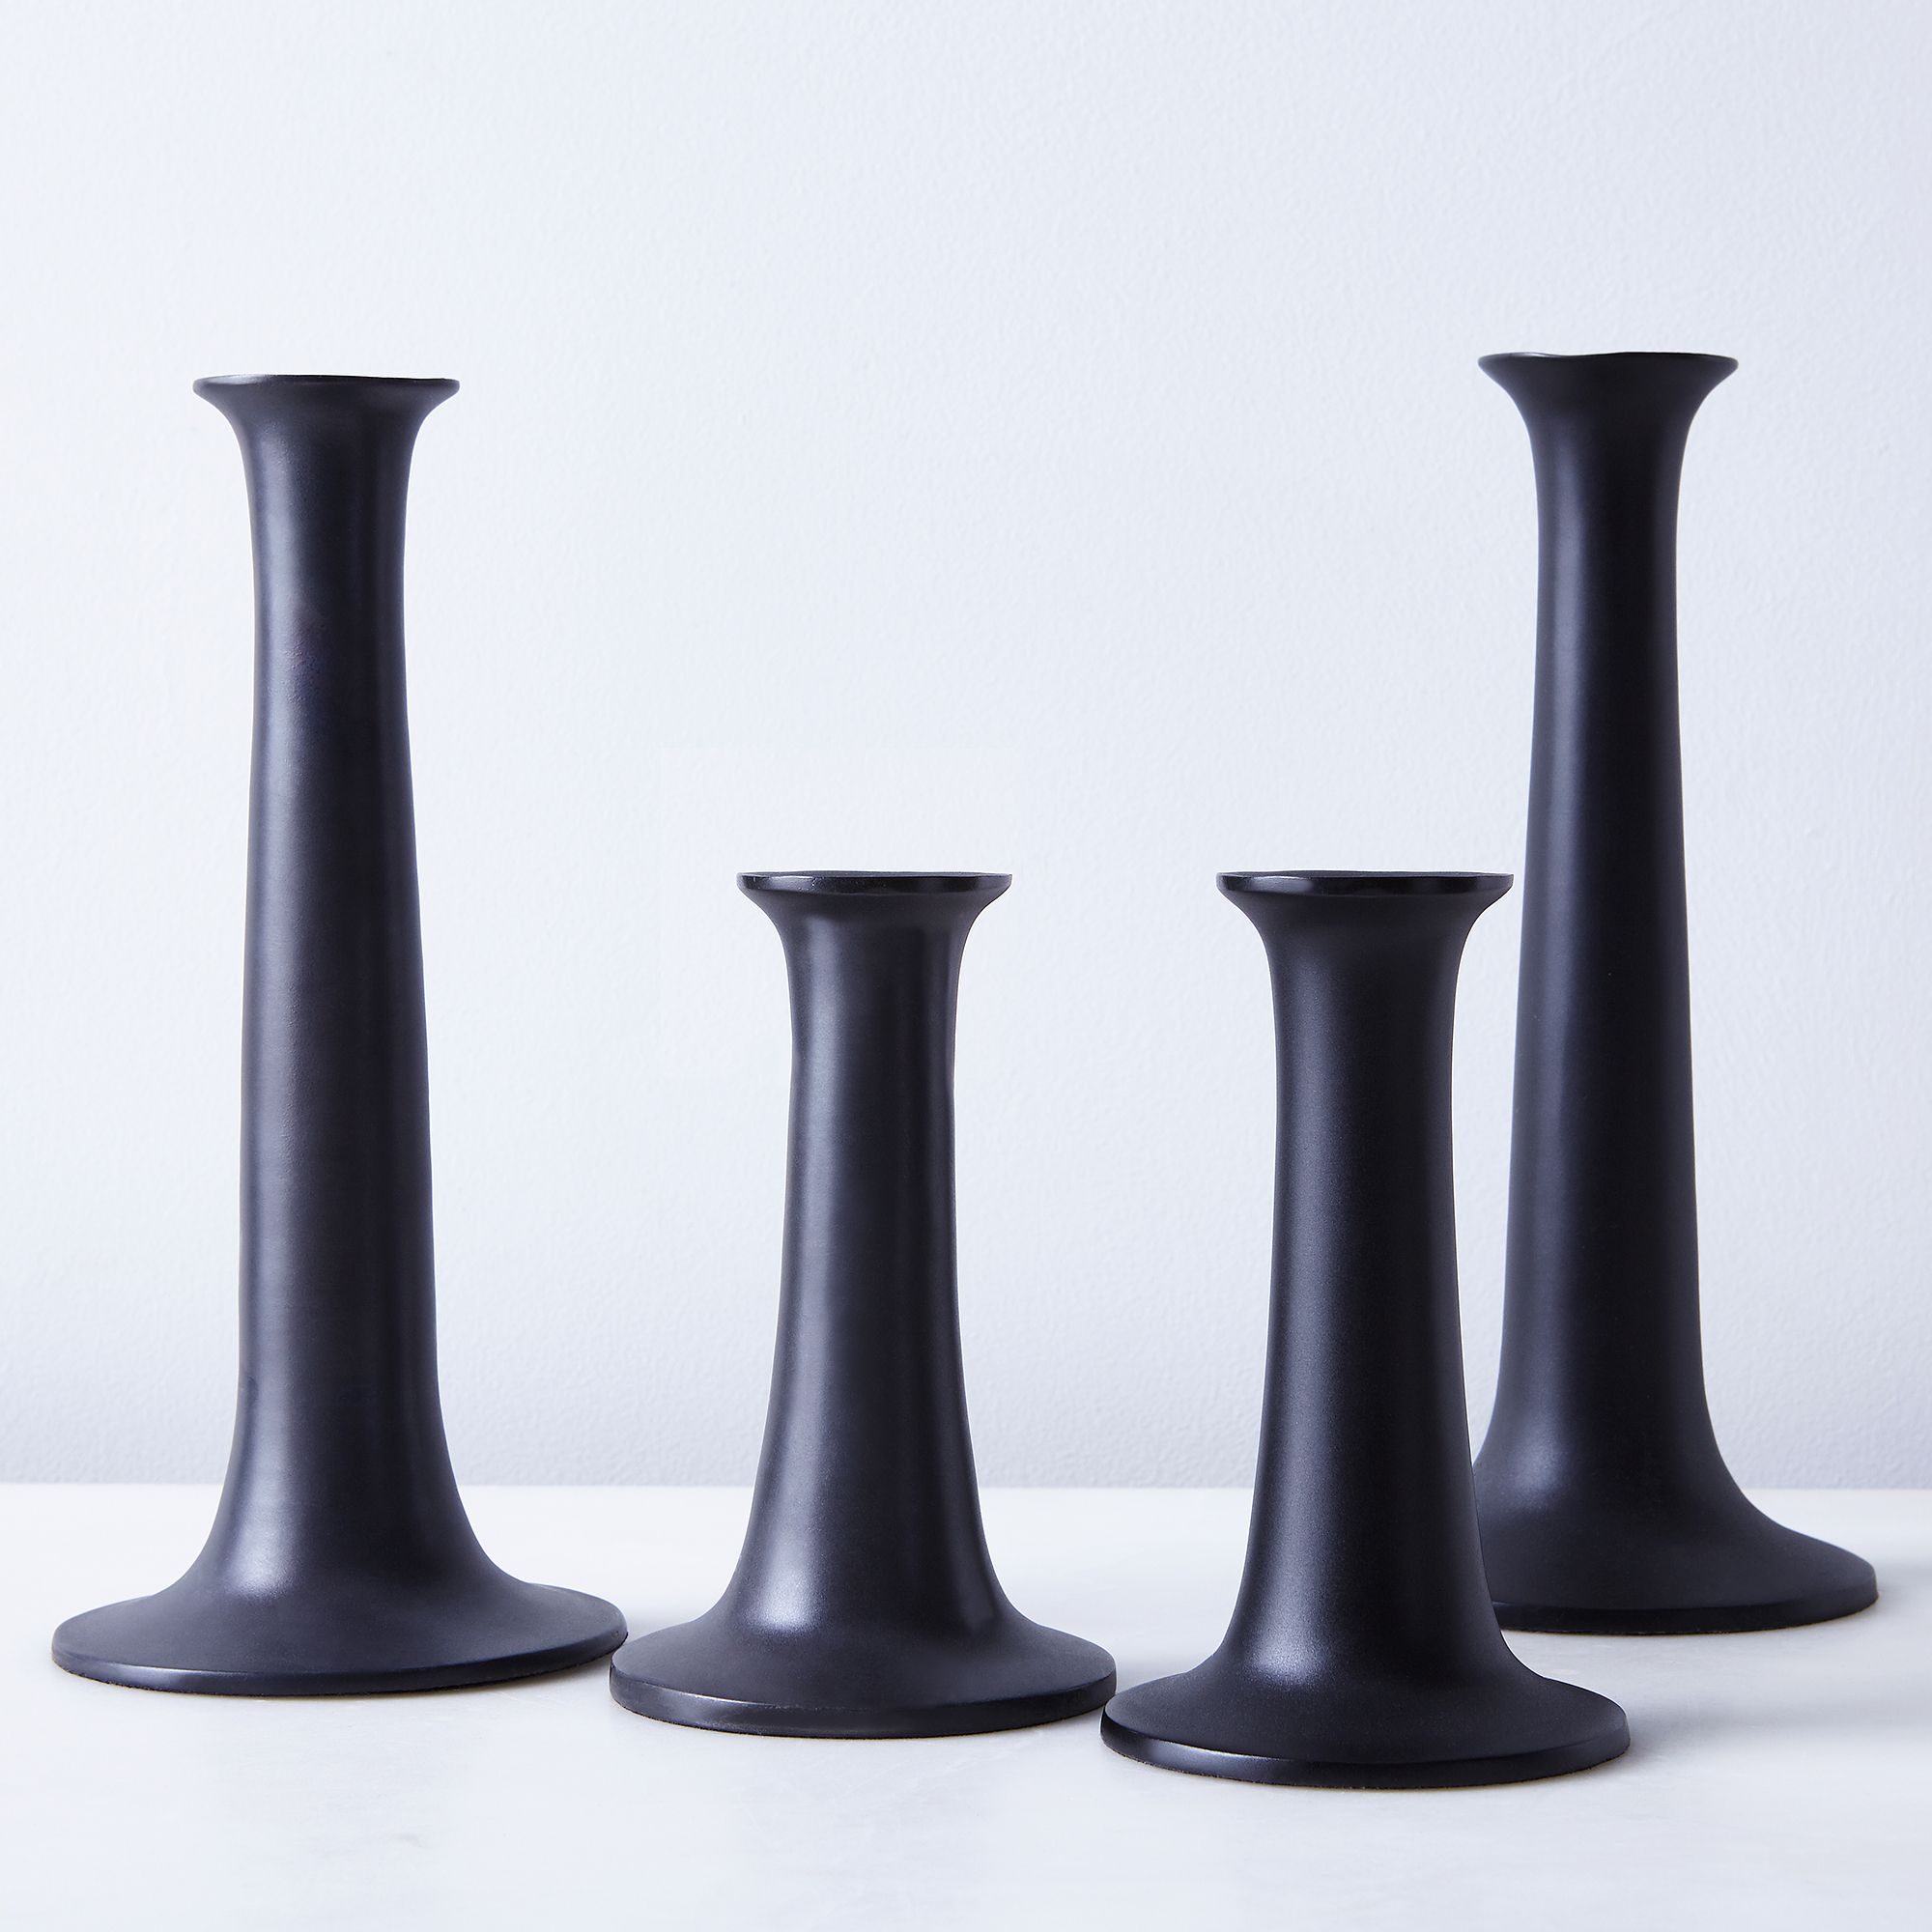 lighting  candles home  food shop - modern black candlesticks (set of )